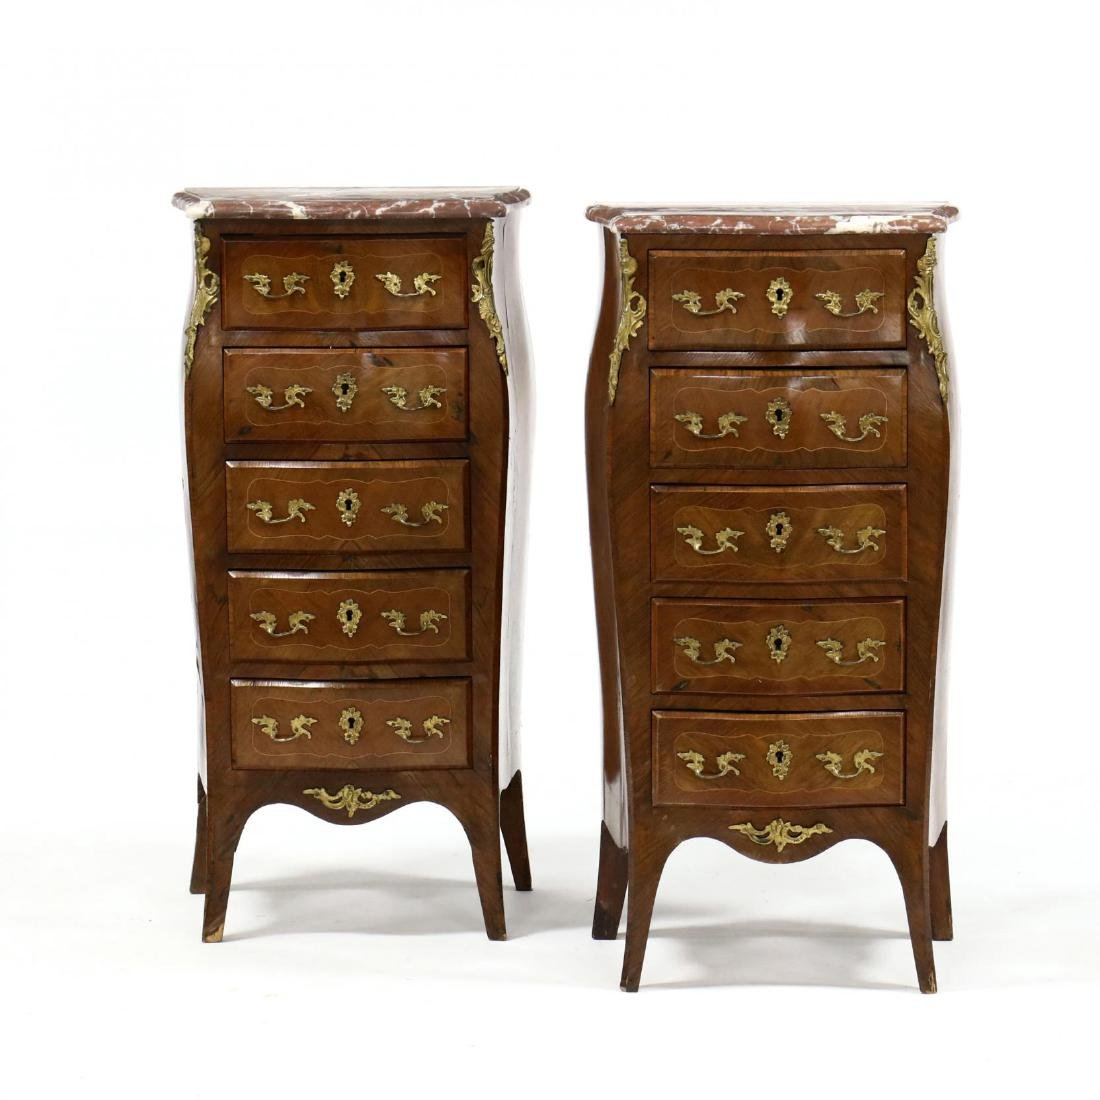 Pair of Louis XV Style Marble Top Lingerie Chests